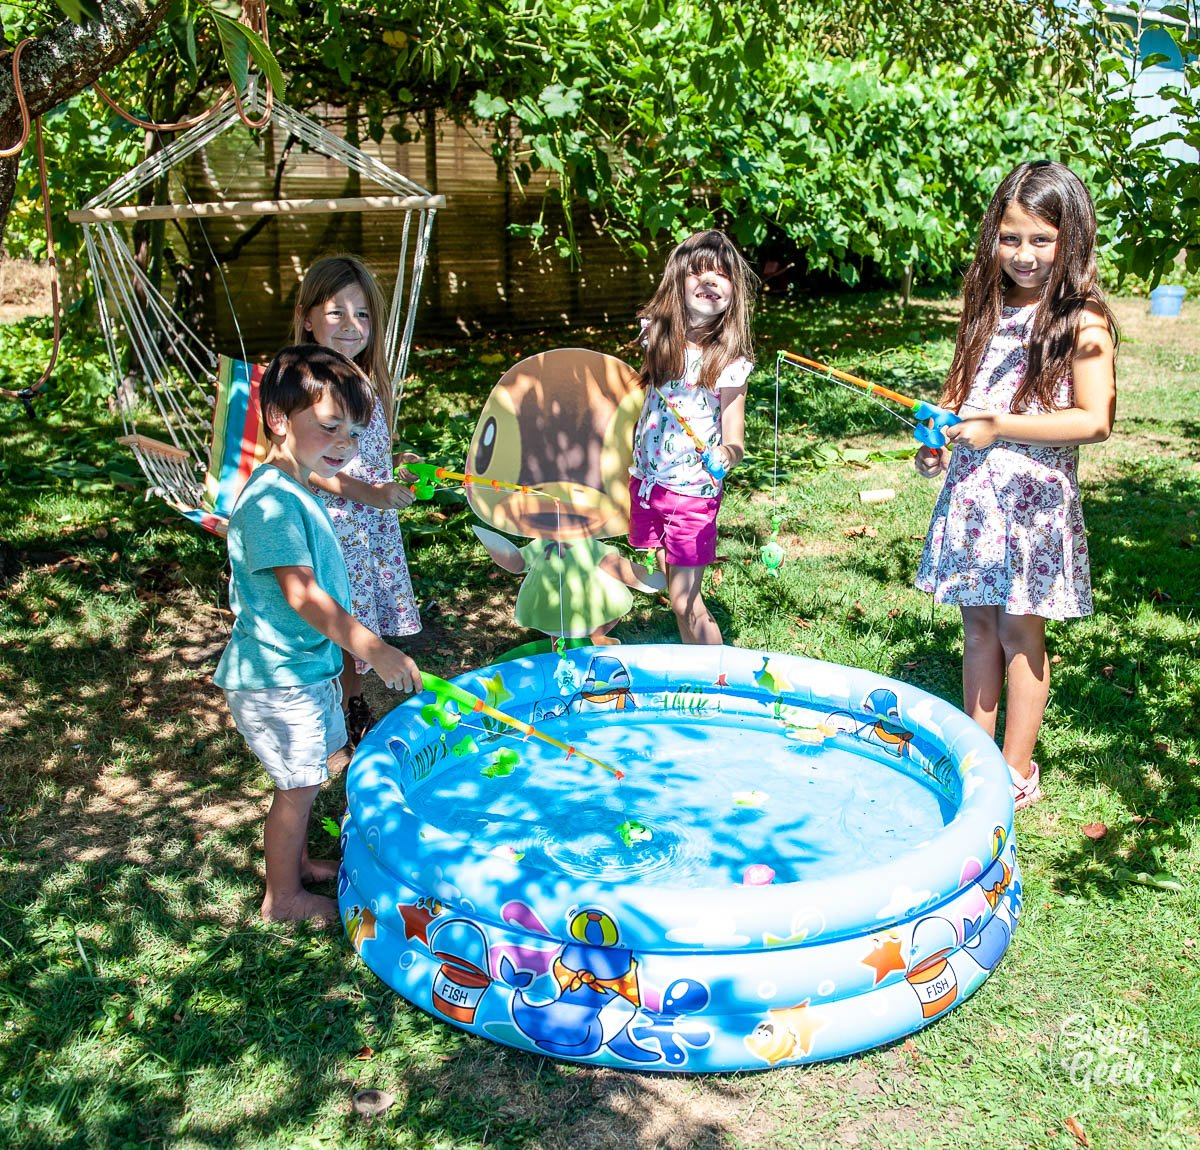 kids fishing with toy fishing poles in a kiddie pool